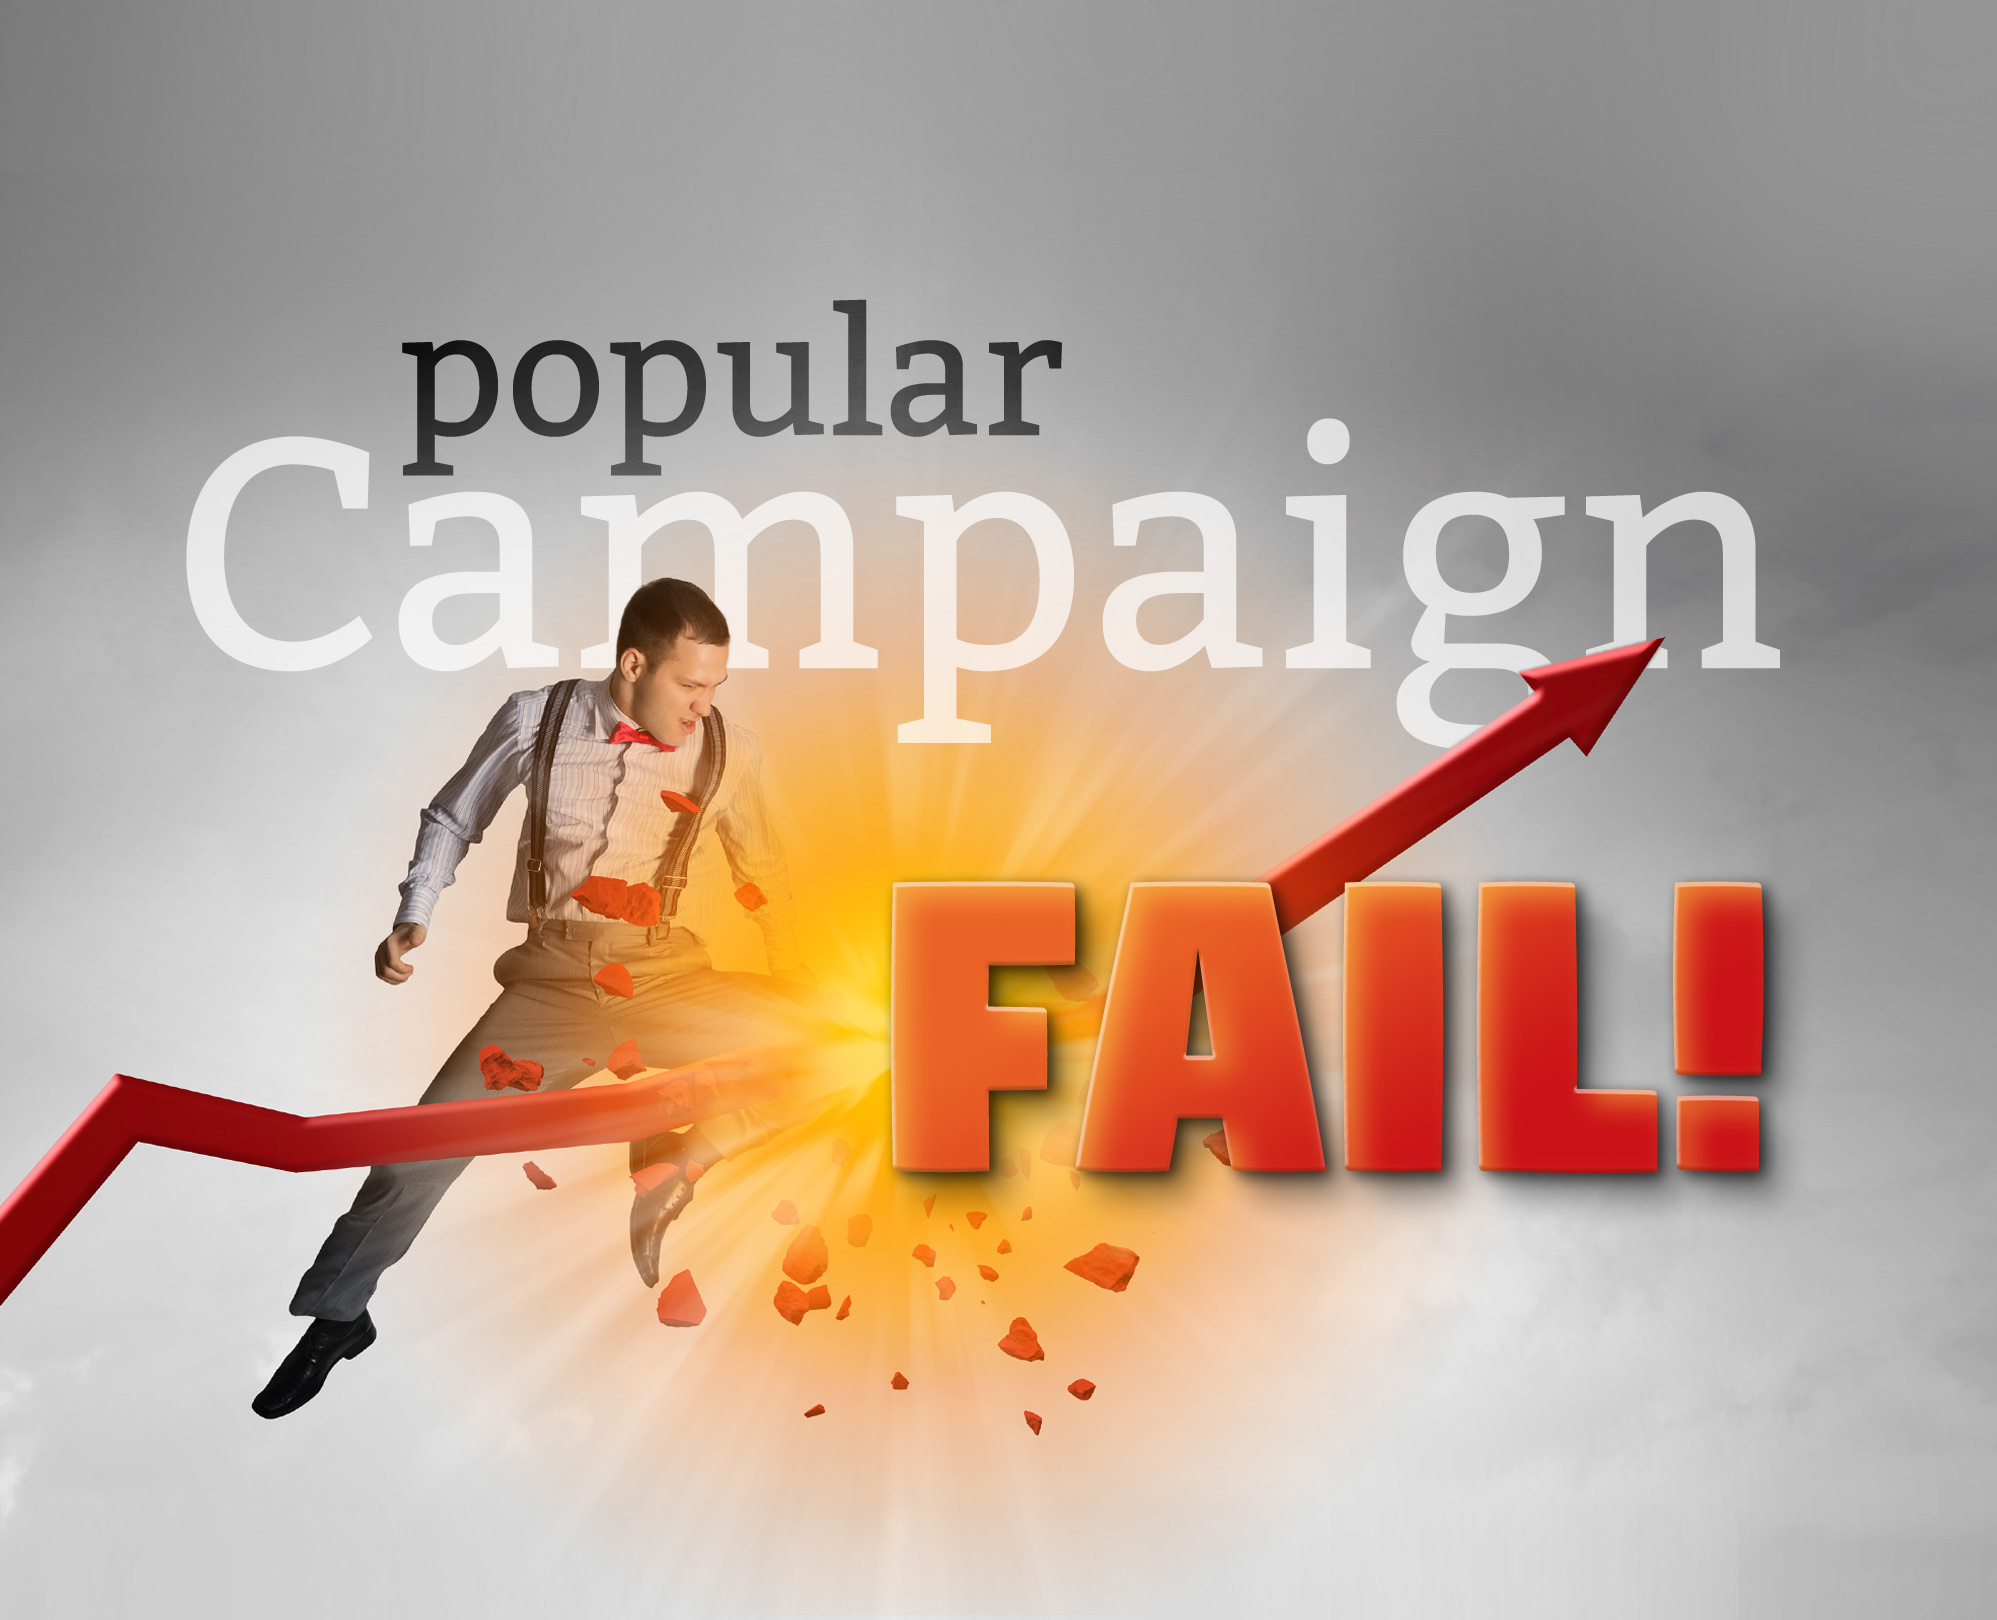 Fame Without Fortune: When Popular Campaigns Ultimately Fail